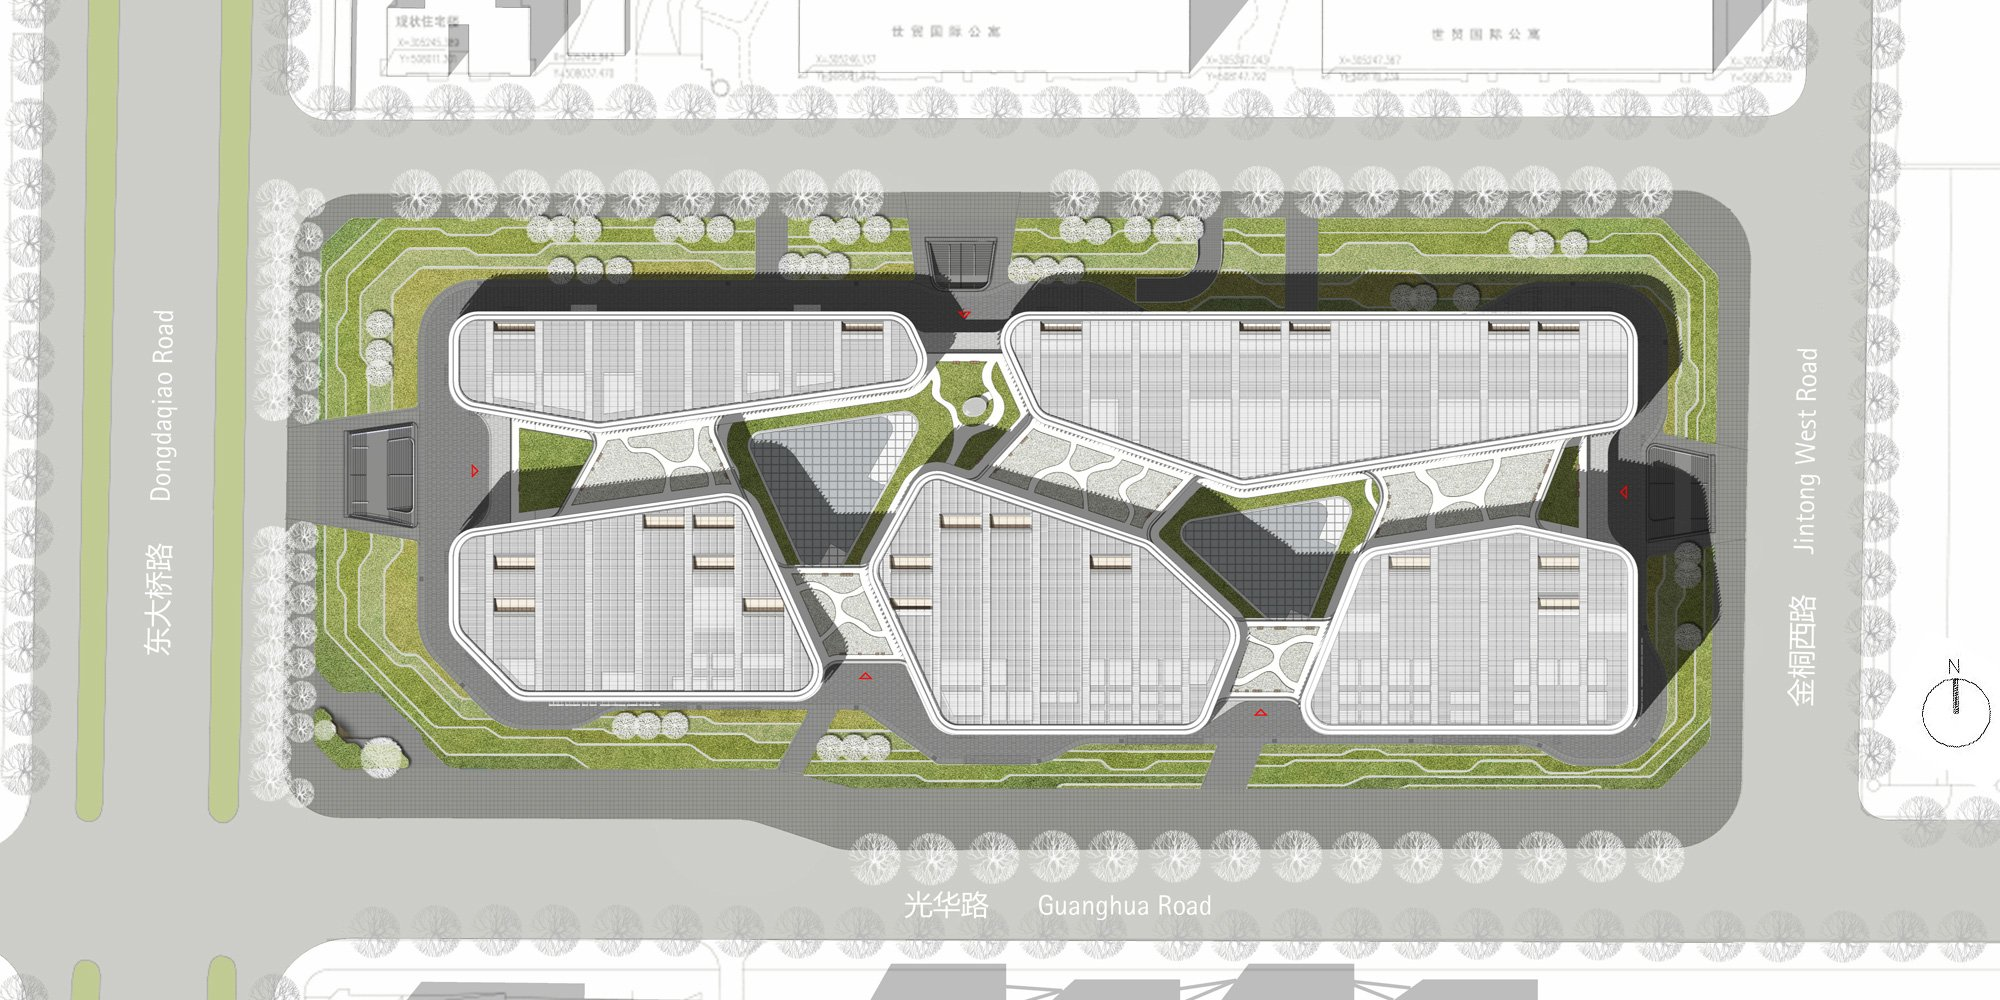 MasterPlan © gmp - von Gerkan, Marg and Partners Architects